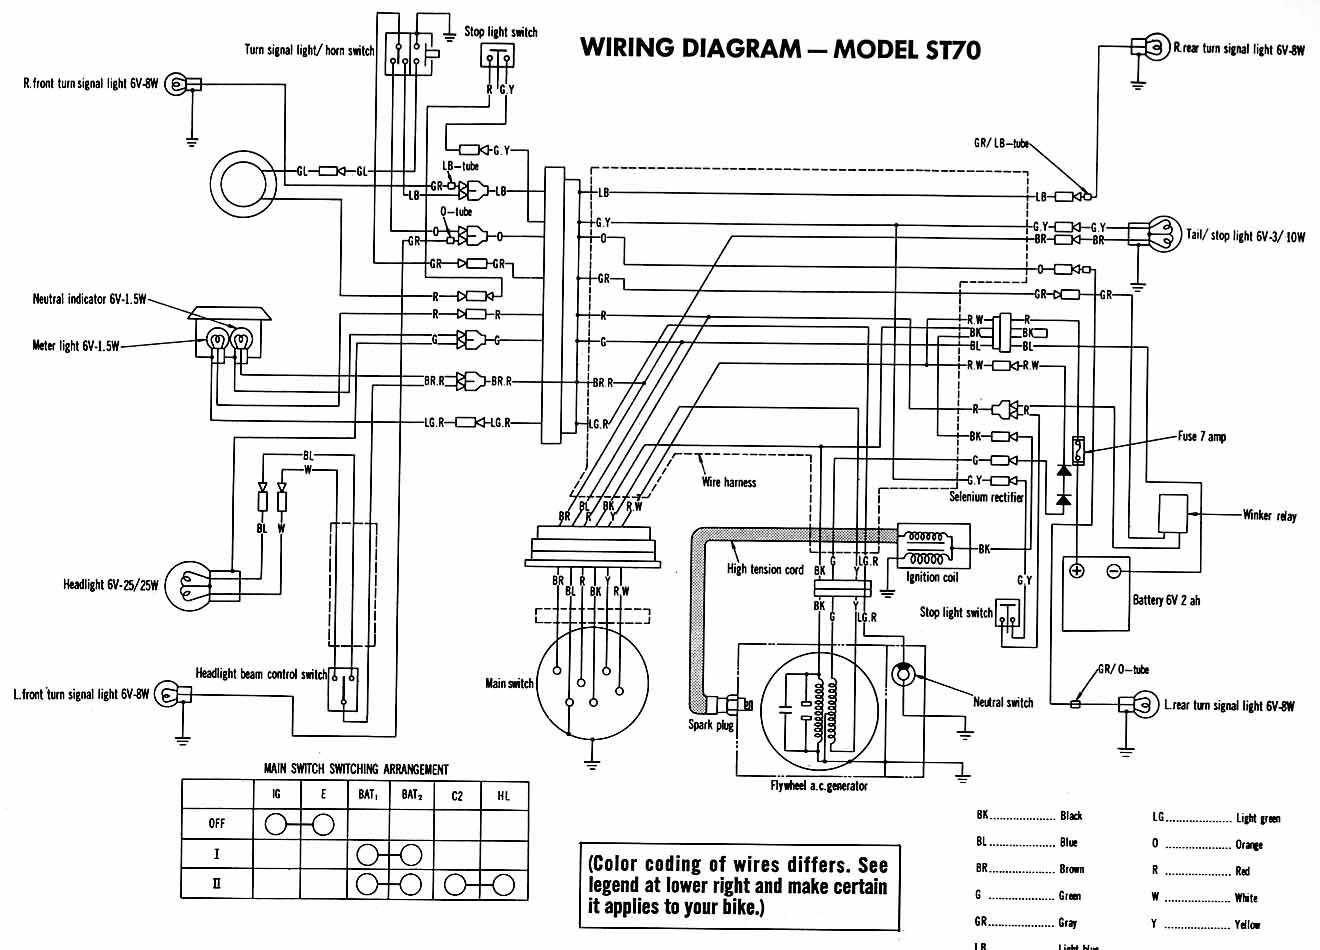 2004 honda cr v fuse box diagram  2004  free engine image for user manual download